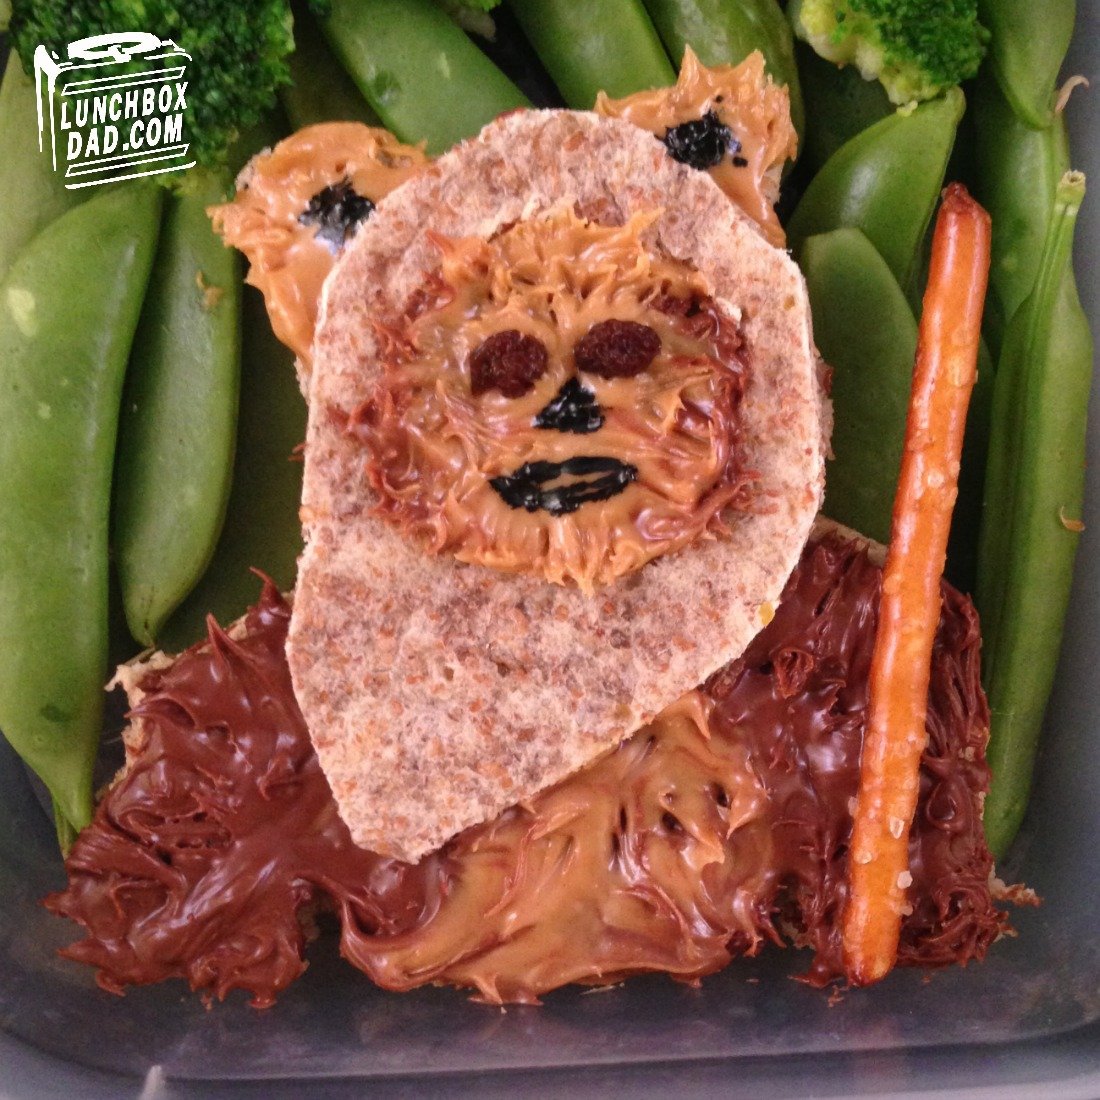 Star Wars Return of the Jedi Ewok Lunch for NAtional Star Wars Day